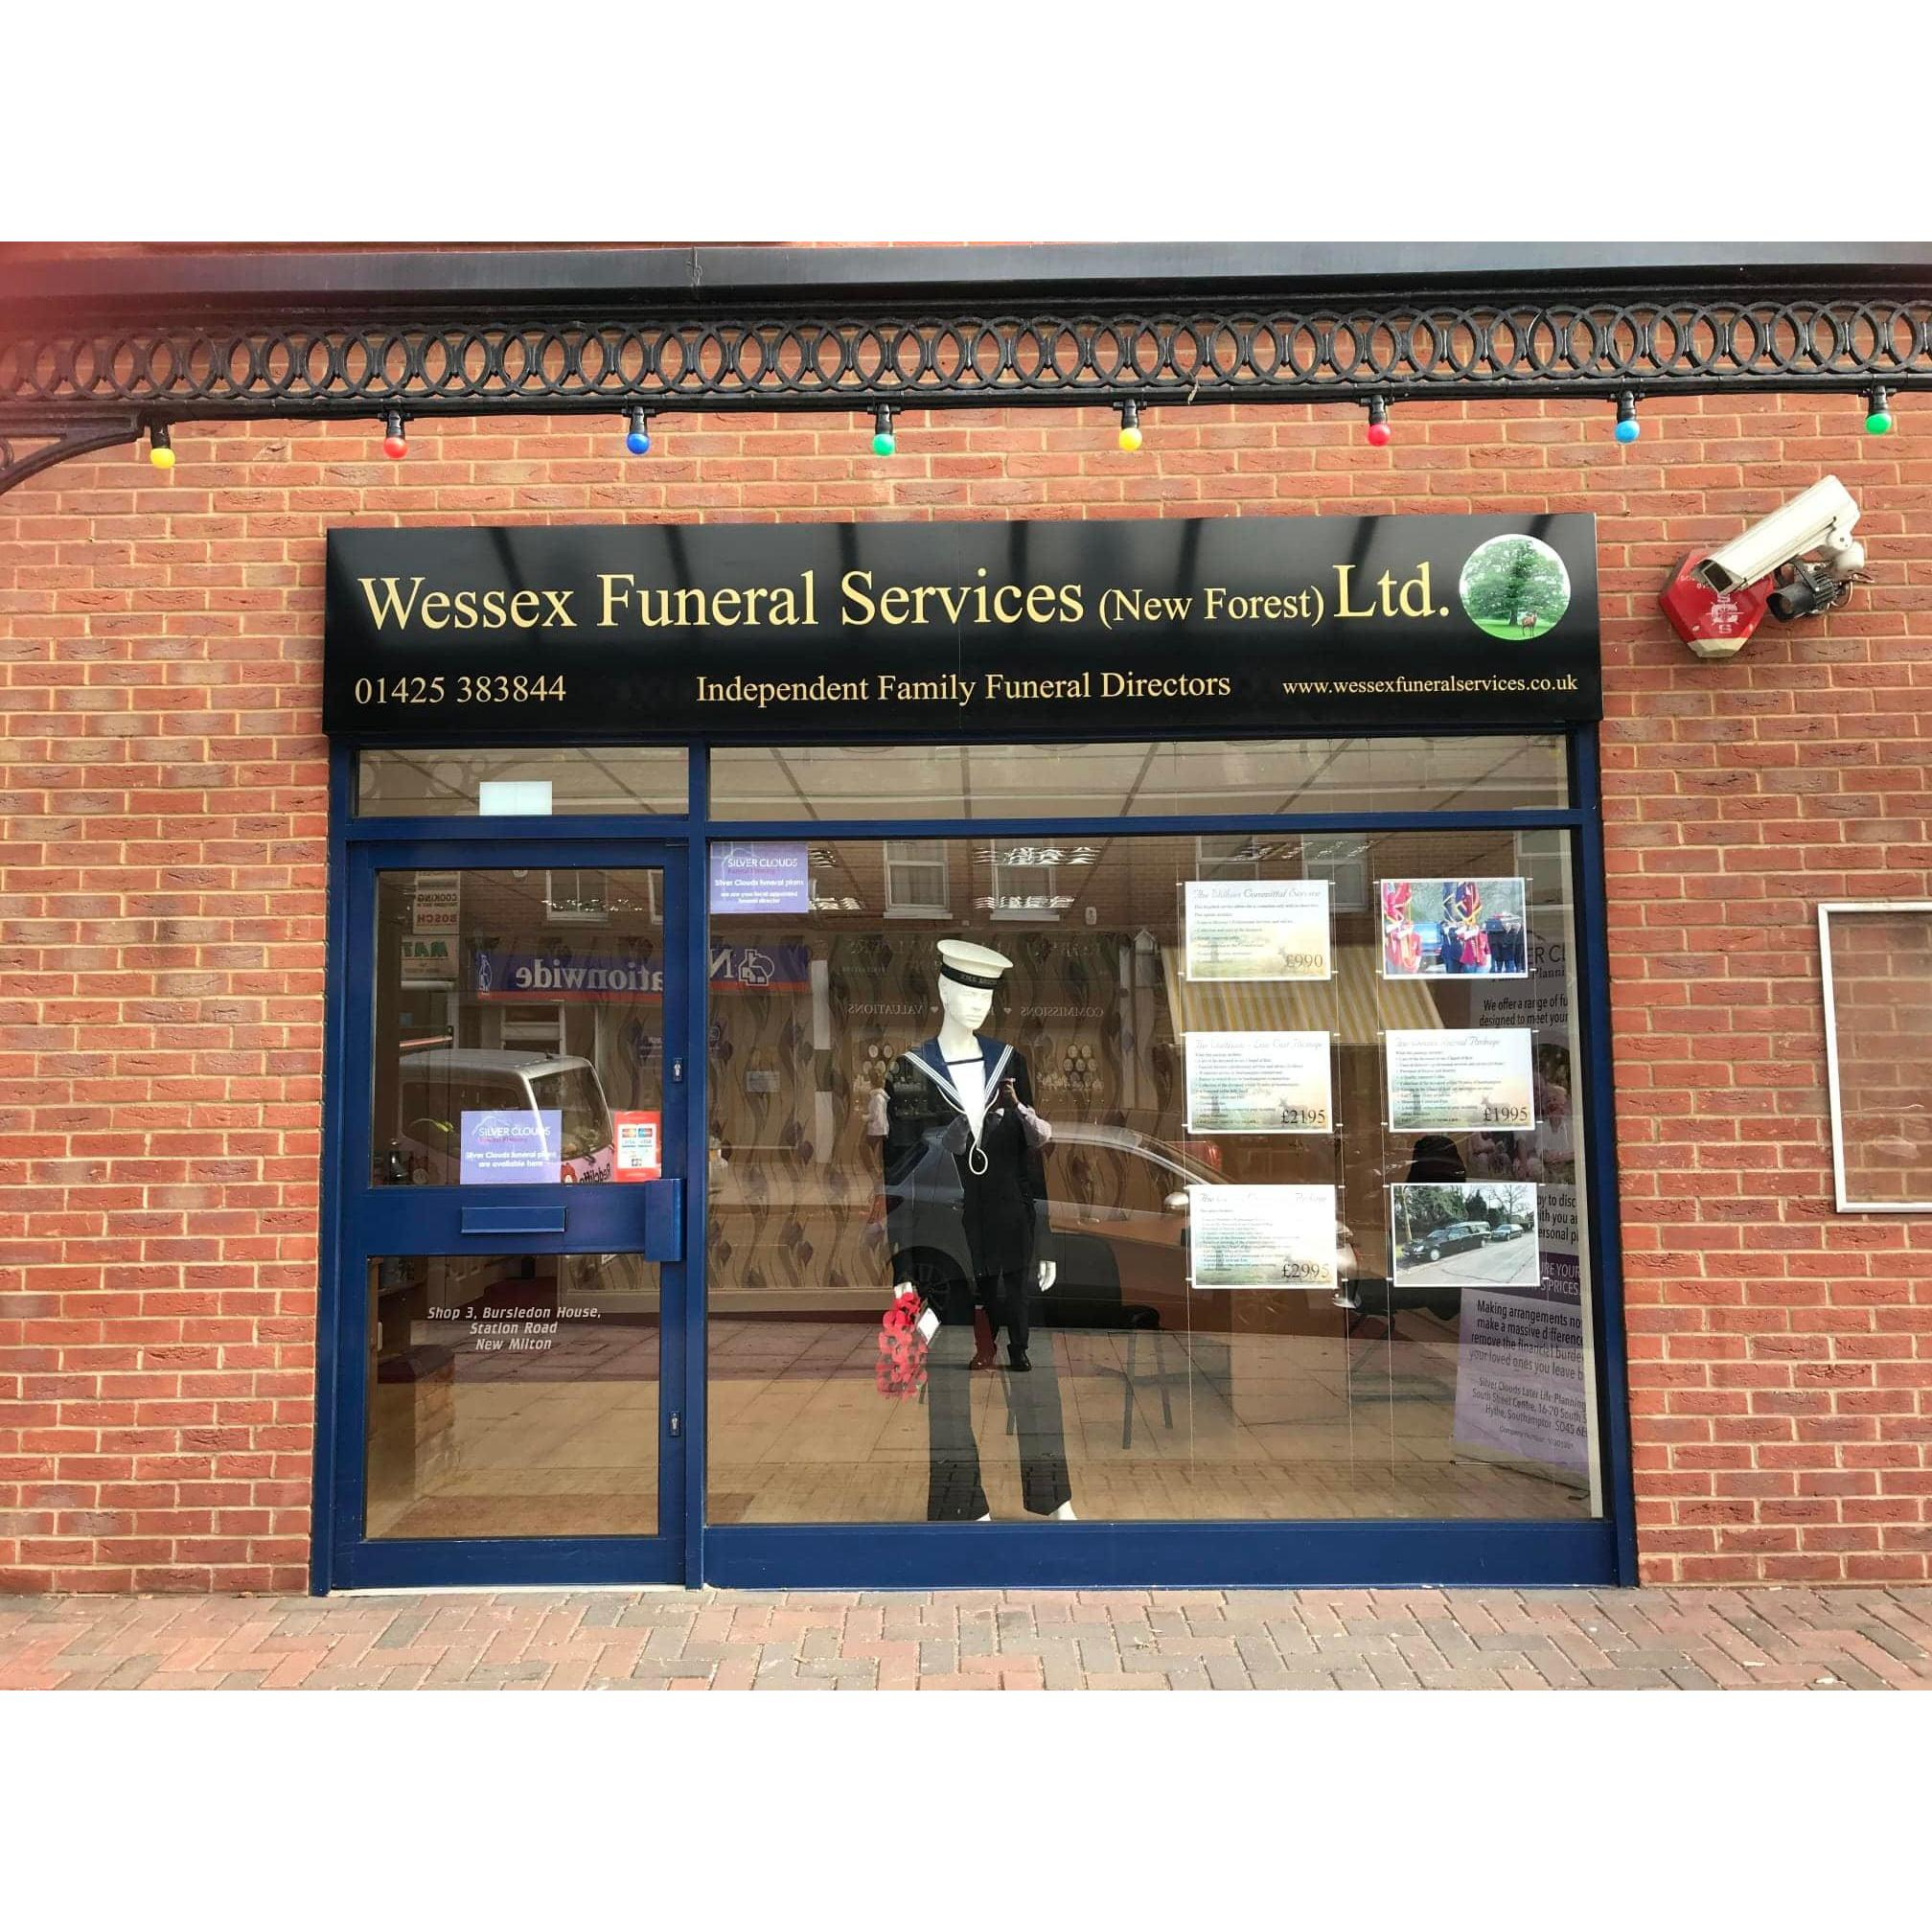 Wessex Funeral Services (New Forest) Ltd - New Milton, Hampshire BH25 6HT - 02380 371677 | ShowMeLocal.com